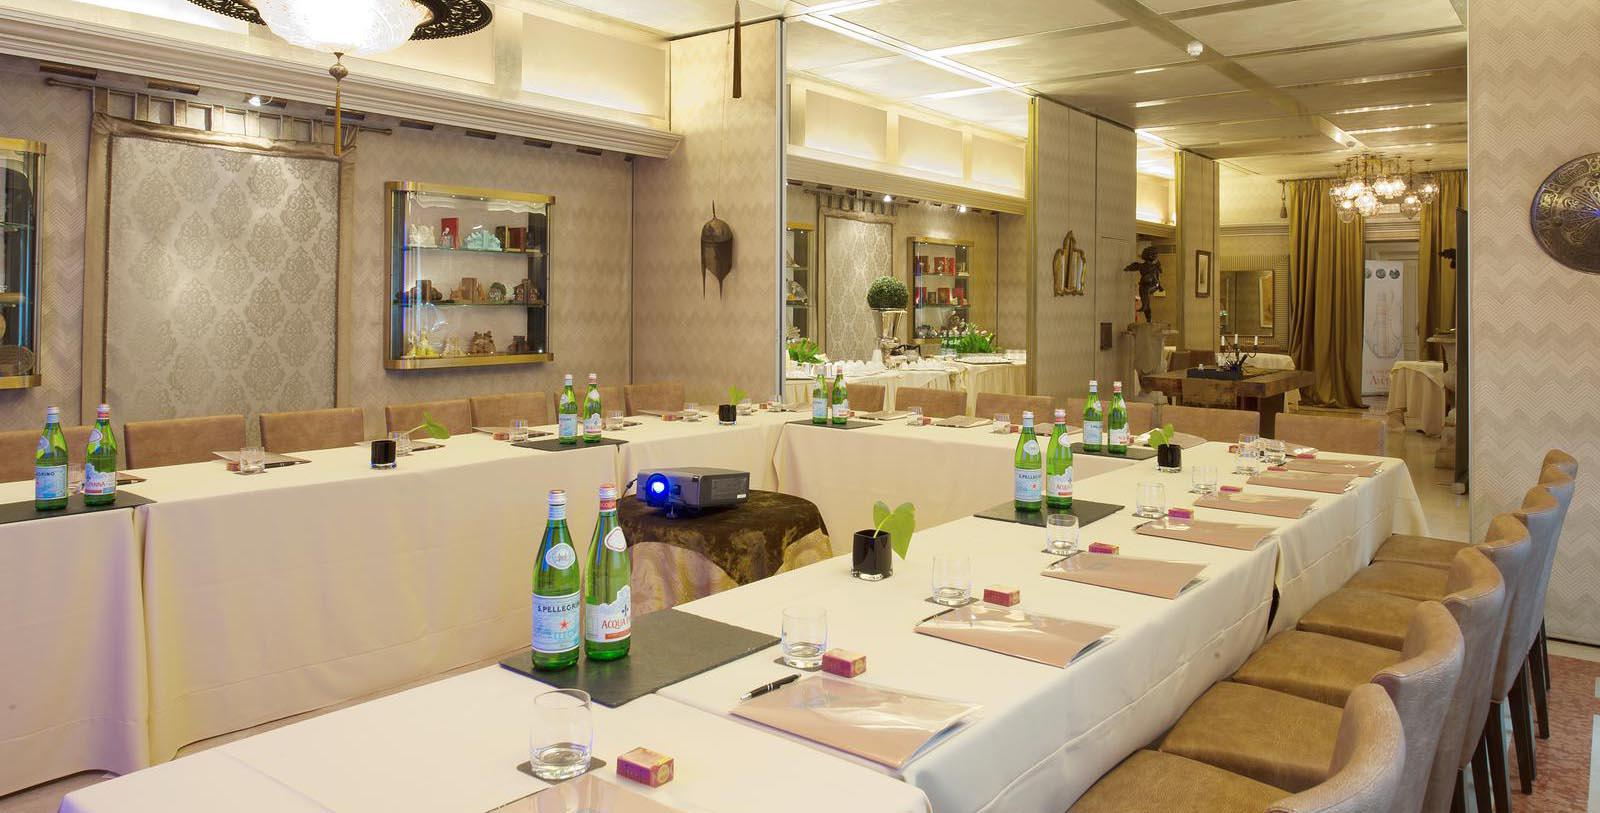 Image of Event Space Metropole Hotel, 1500, Member of Historic Hotels Worldwide, in Venice, Italy, Special Occasions